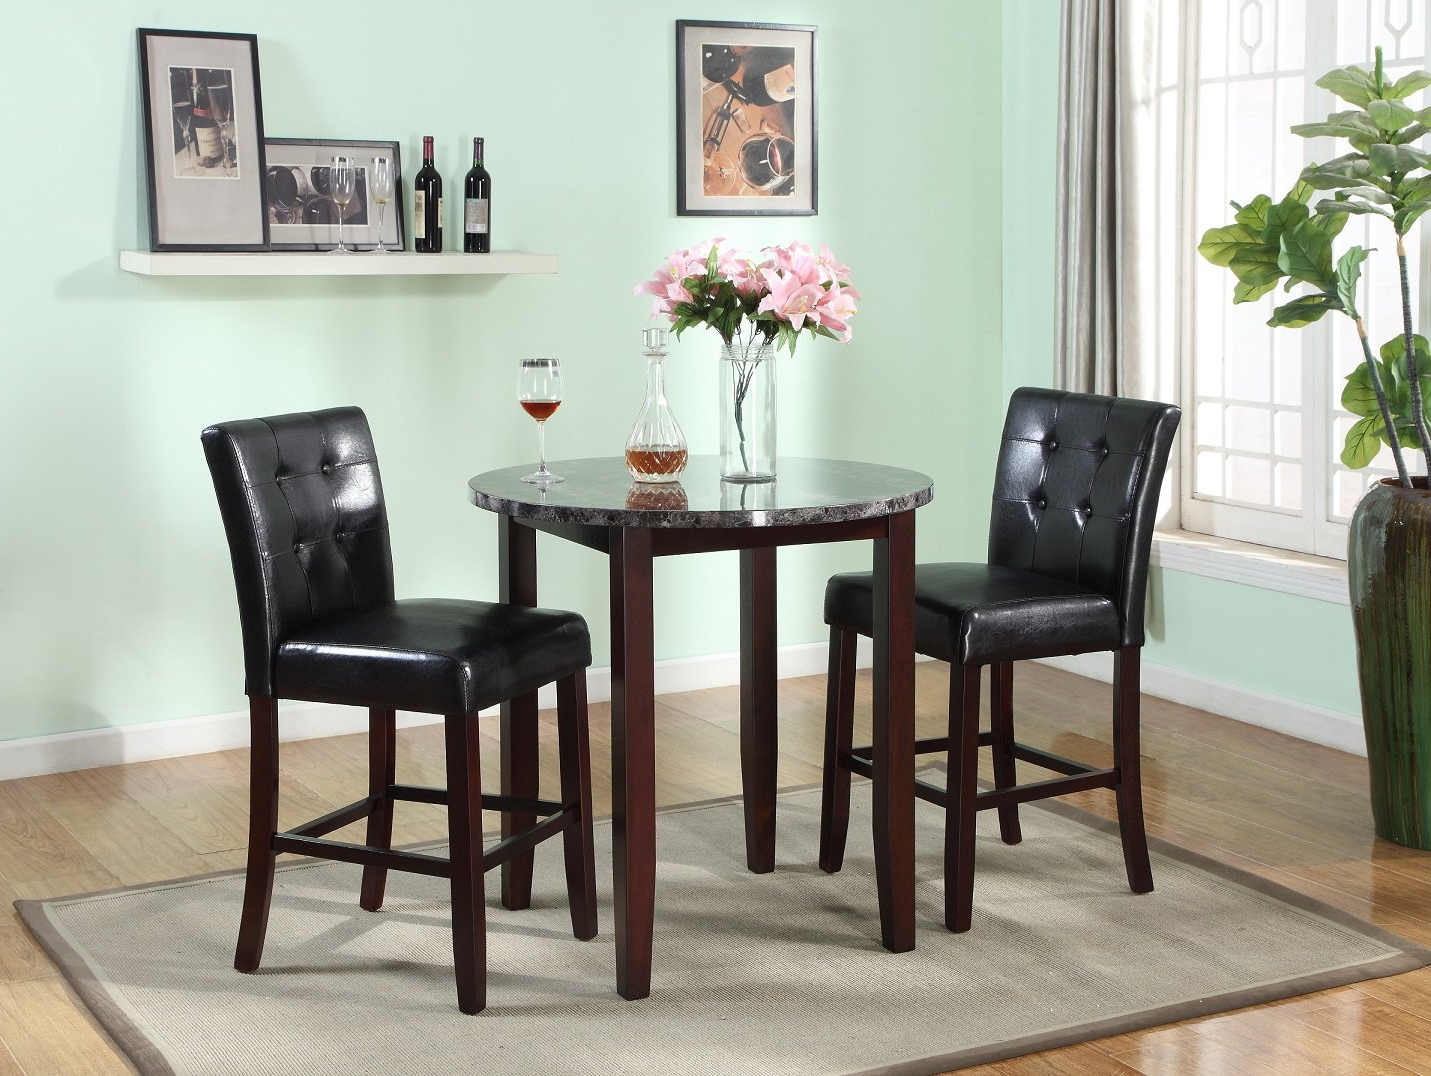 Janmarie 3 Piece Counter Height Dining Set Within Favorite Mizpah 3 Piece Counter Height Dining Sets (Gallery 8 of 20)